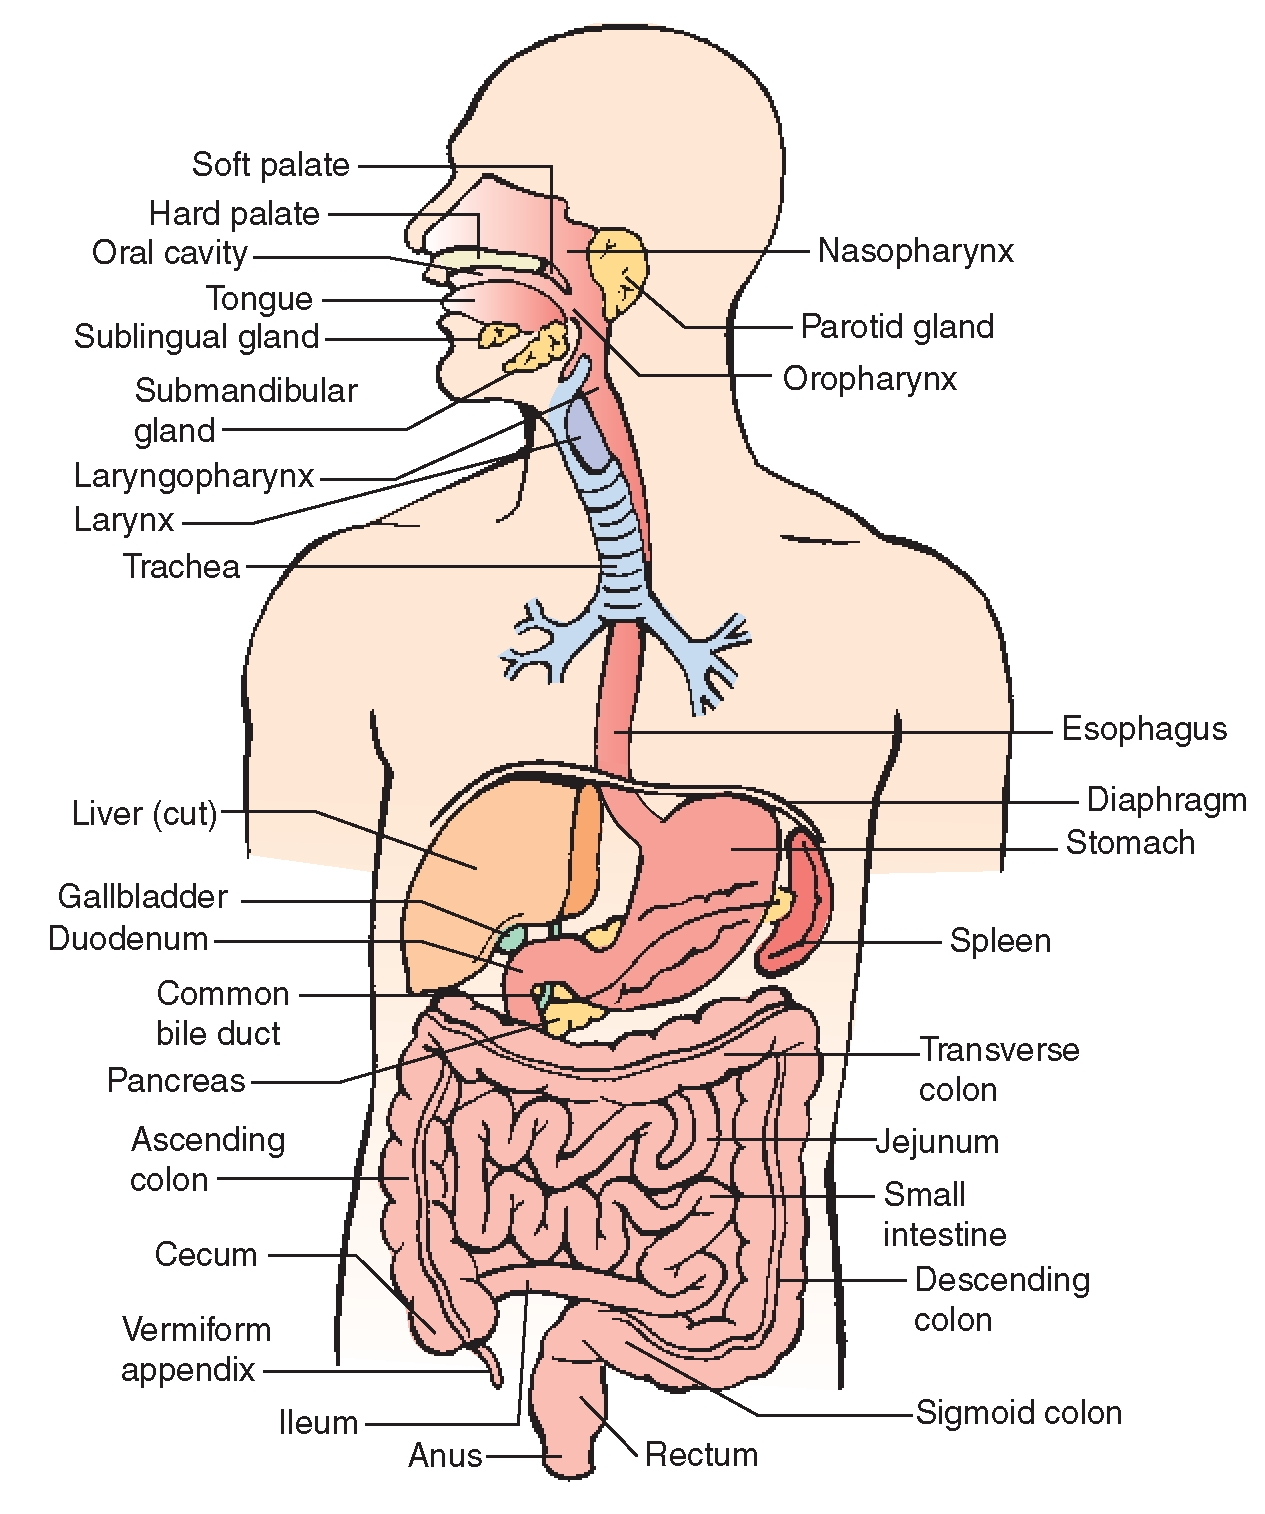 Body Internal Parts In Figure Anatomy Of Internal Body Parts In